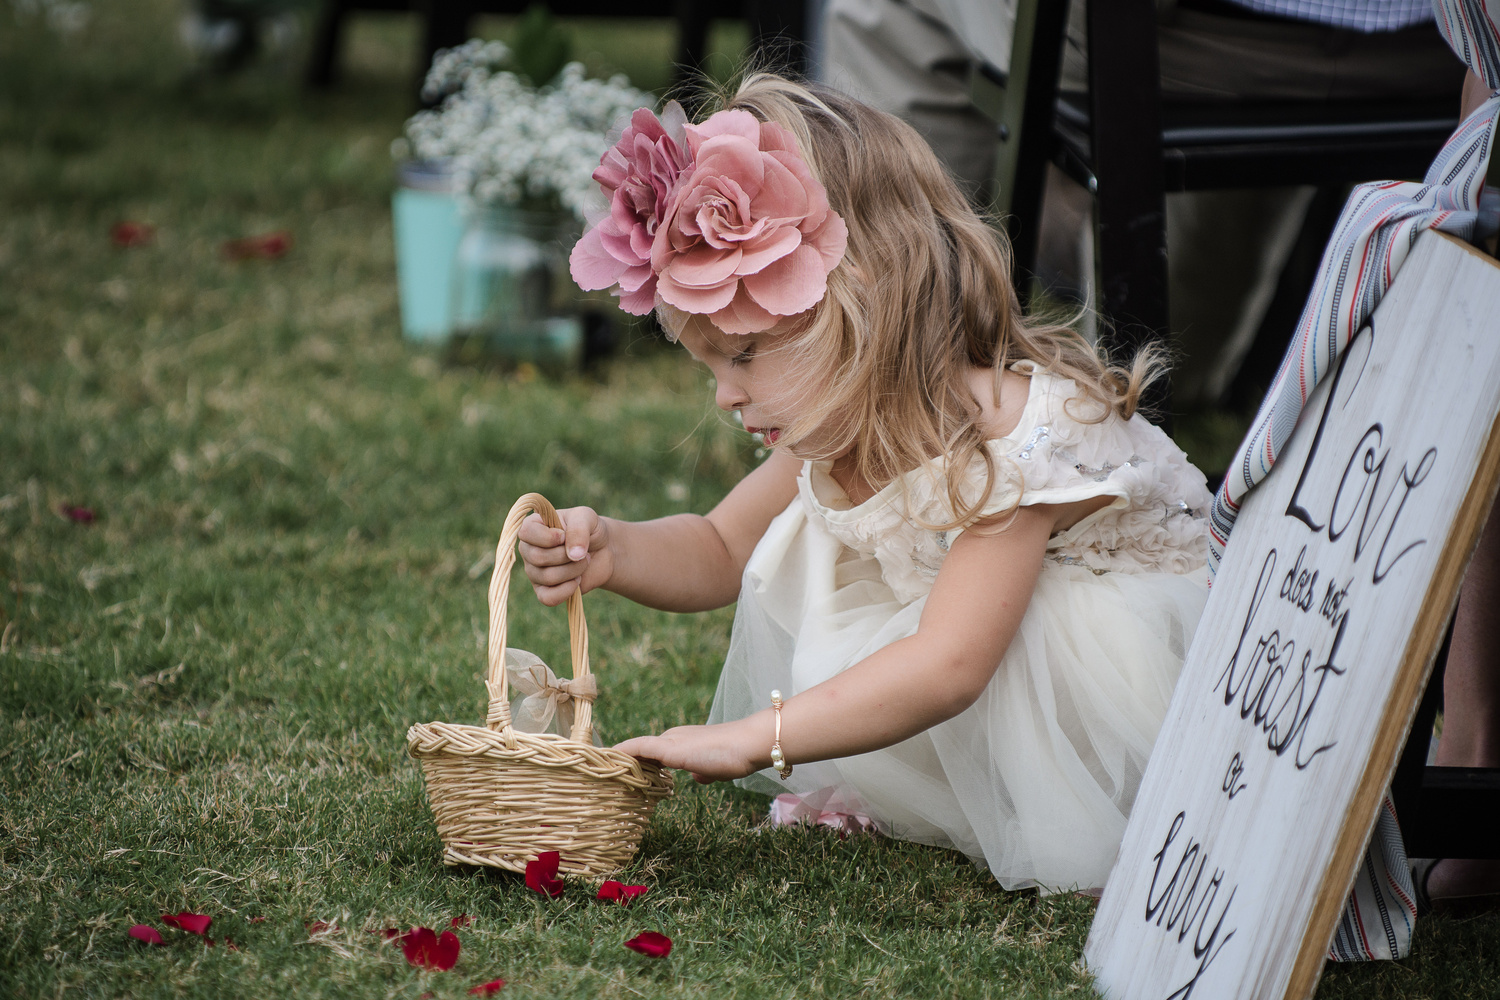 Kids at The Wedding by Bill Wells